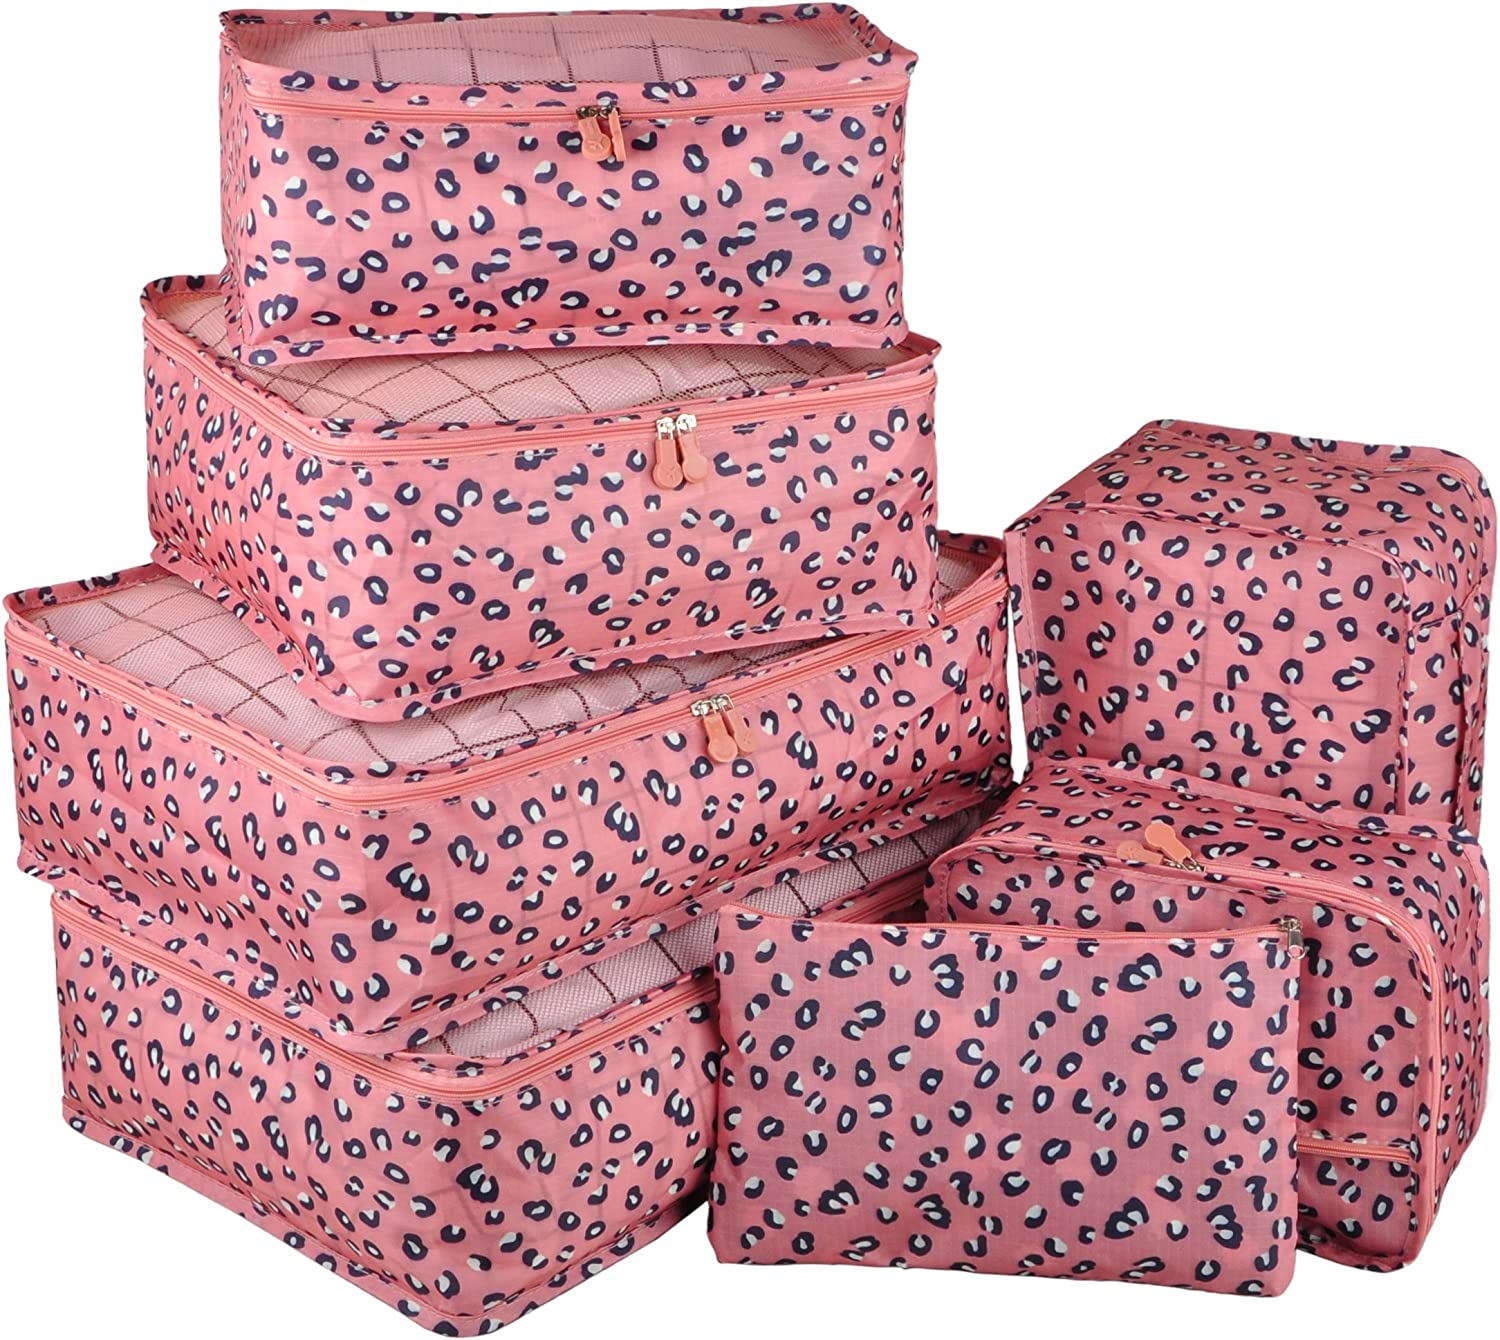 Vercord 7 Set Travel Packing Organizers Cubes Mesh Luggage Cloth Bag Cubes with Bra Underwear Cube and Shoe Pouch, Pink Leopard